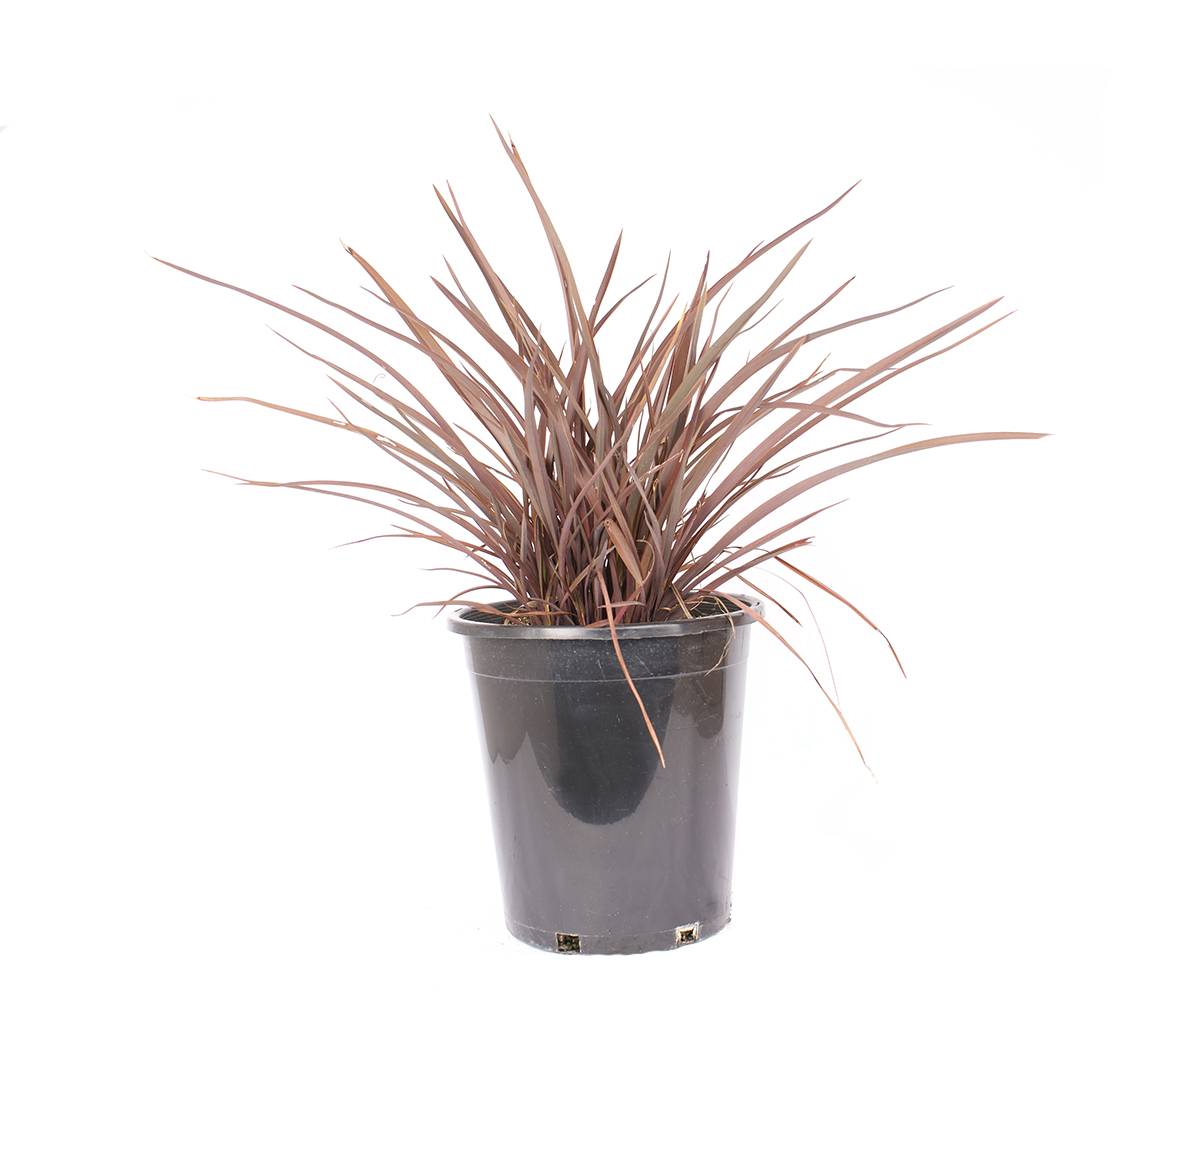 Phormium jack Spratt has red sword like leaves pictured in a black nursery container